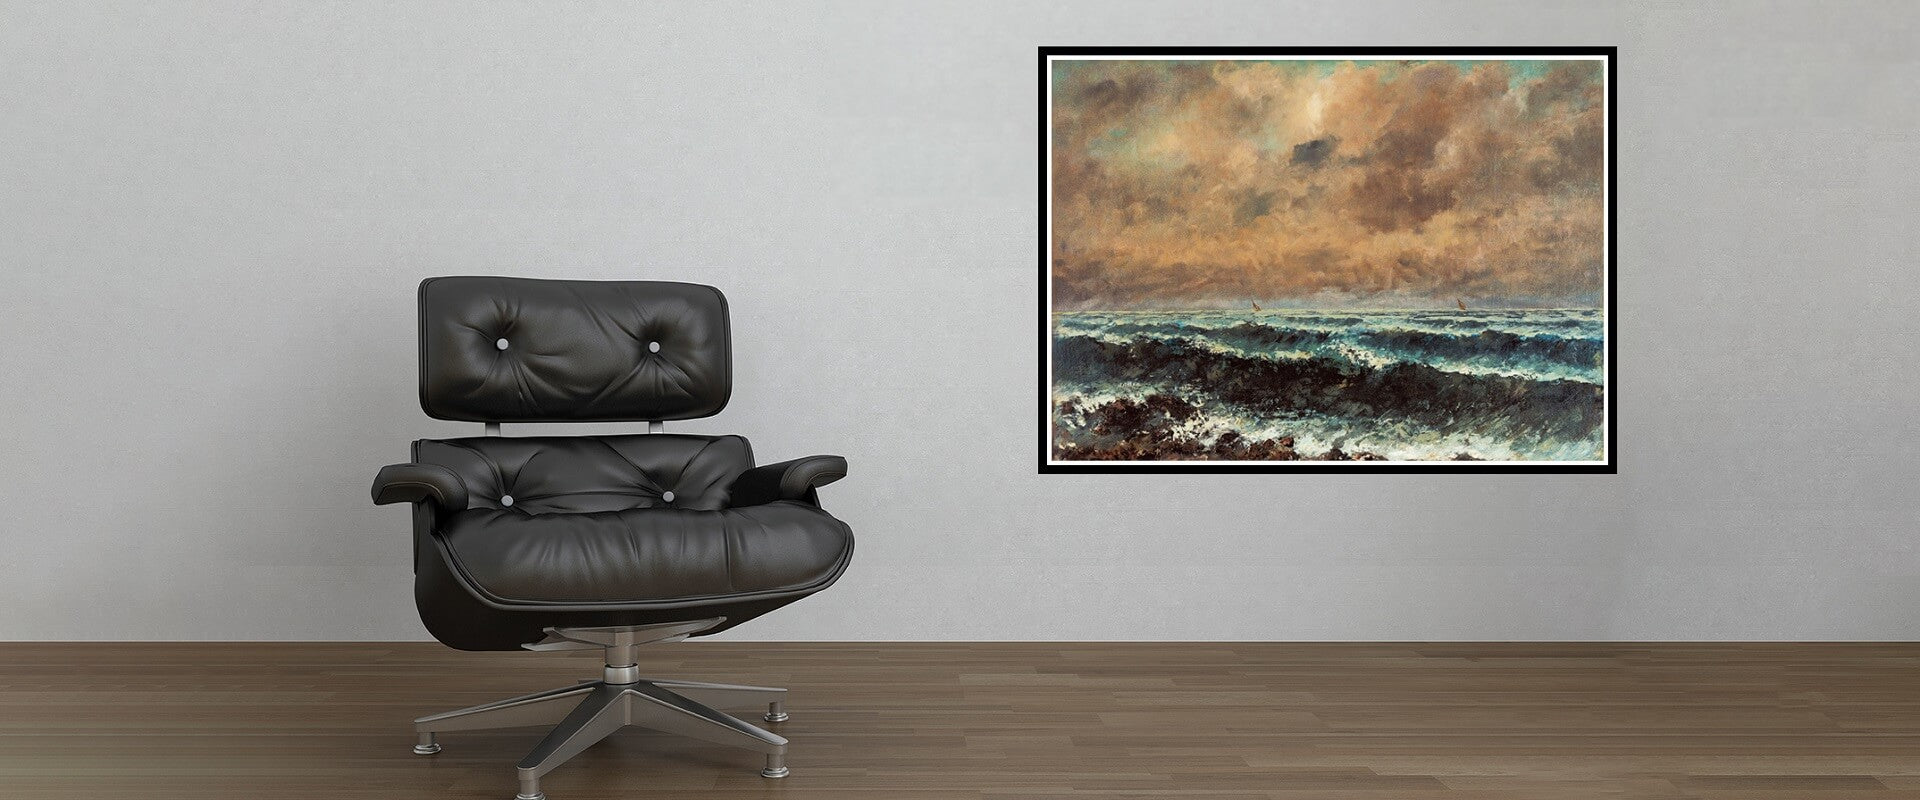 Posters — Renaissance Art | Buy Posters, Frames, Canvas, Digital Art & Large Size Prints